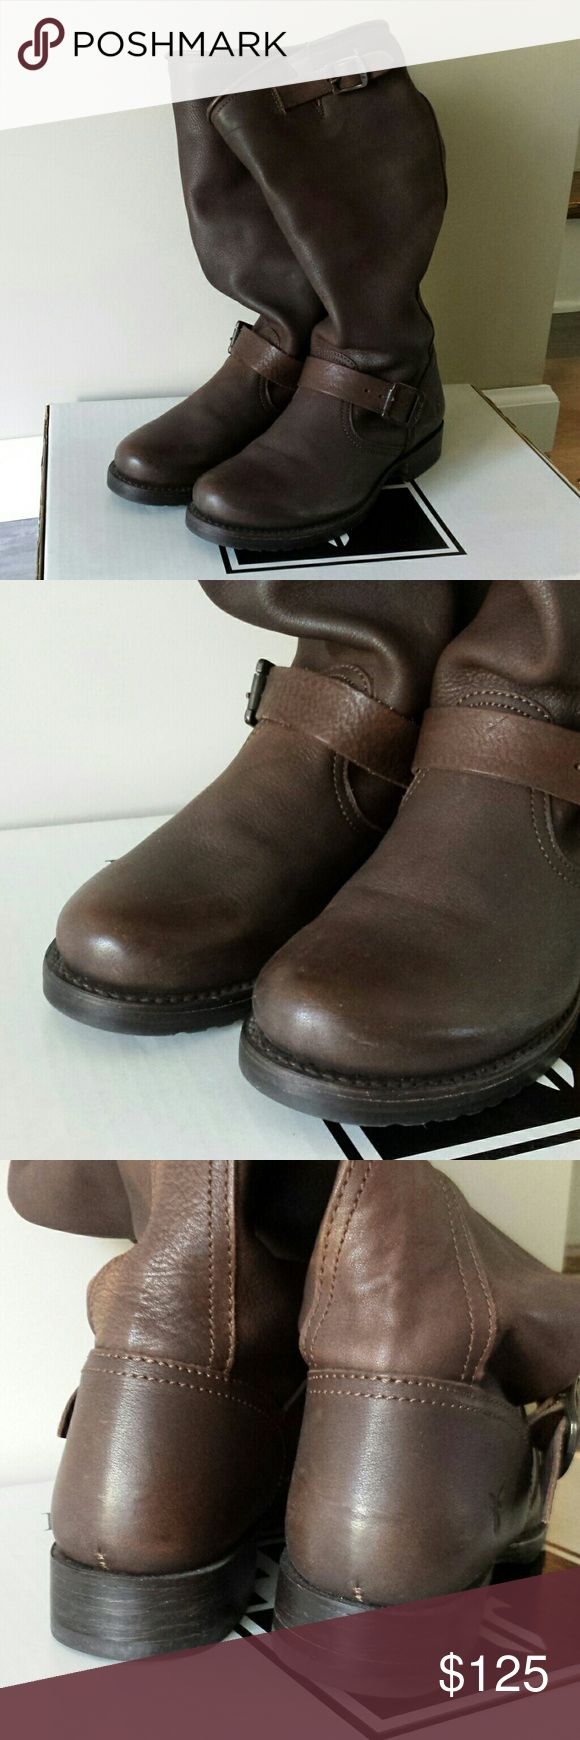 Frye Veronica Slouch Boots Authentic Frye boots with original box. Excellent condition! Only worn a handful of times. Barely any signs of wear. Amazing deal on high end, quality boots. Dark brown size 8.5. Frye Shoes